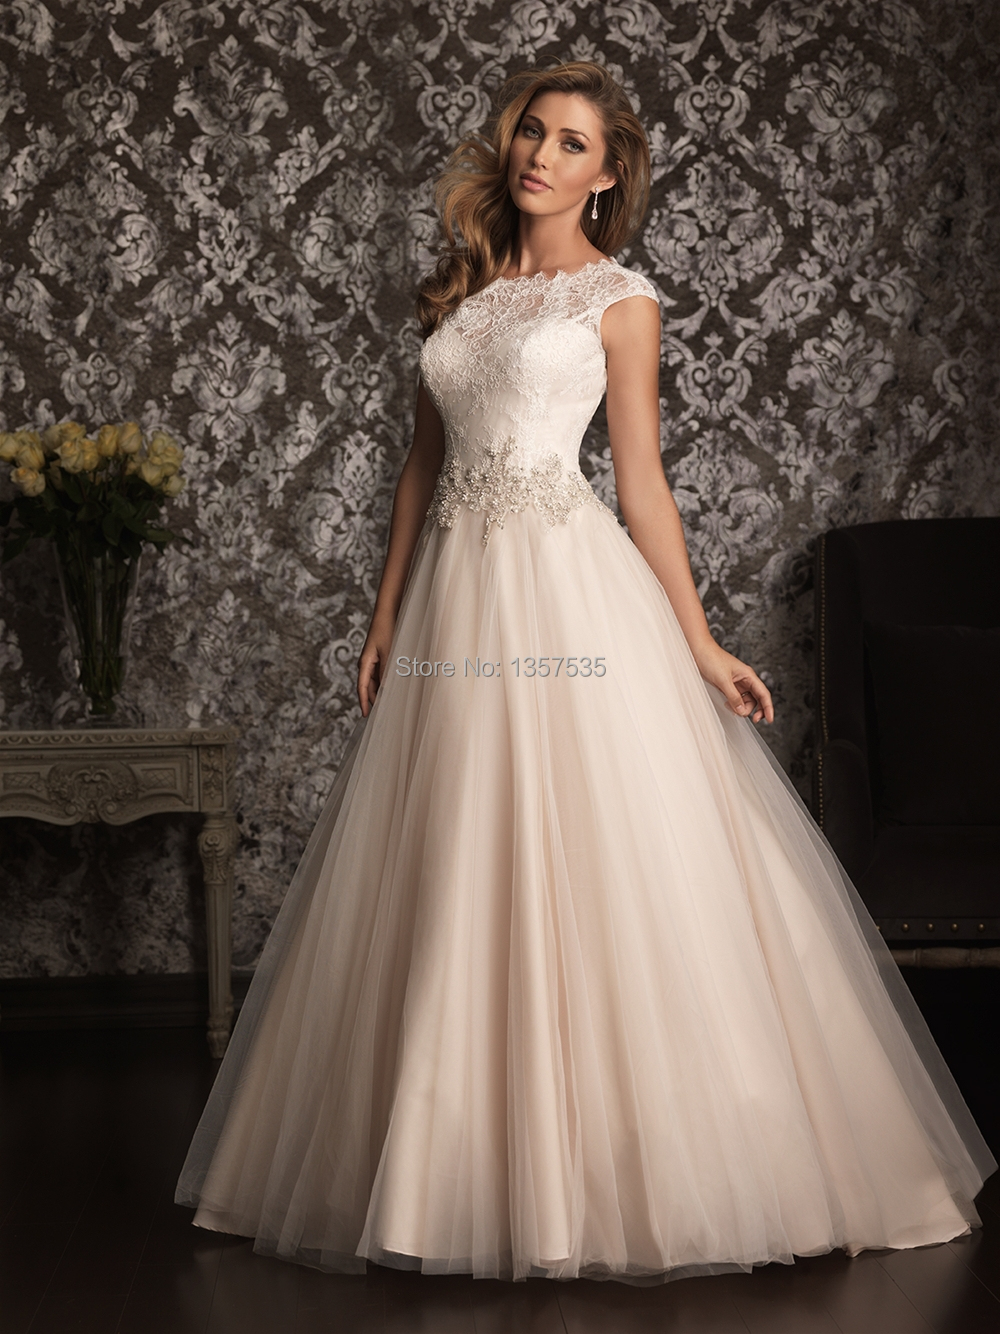 Cut Out Back 2014 Princess Wedding Dress with Lace Vestido De Noiva ...